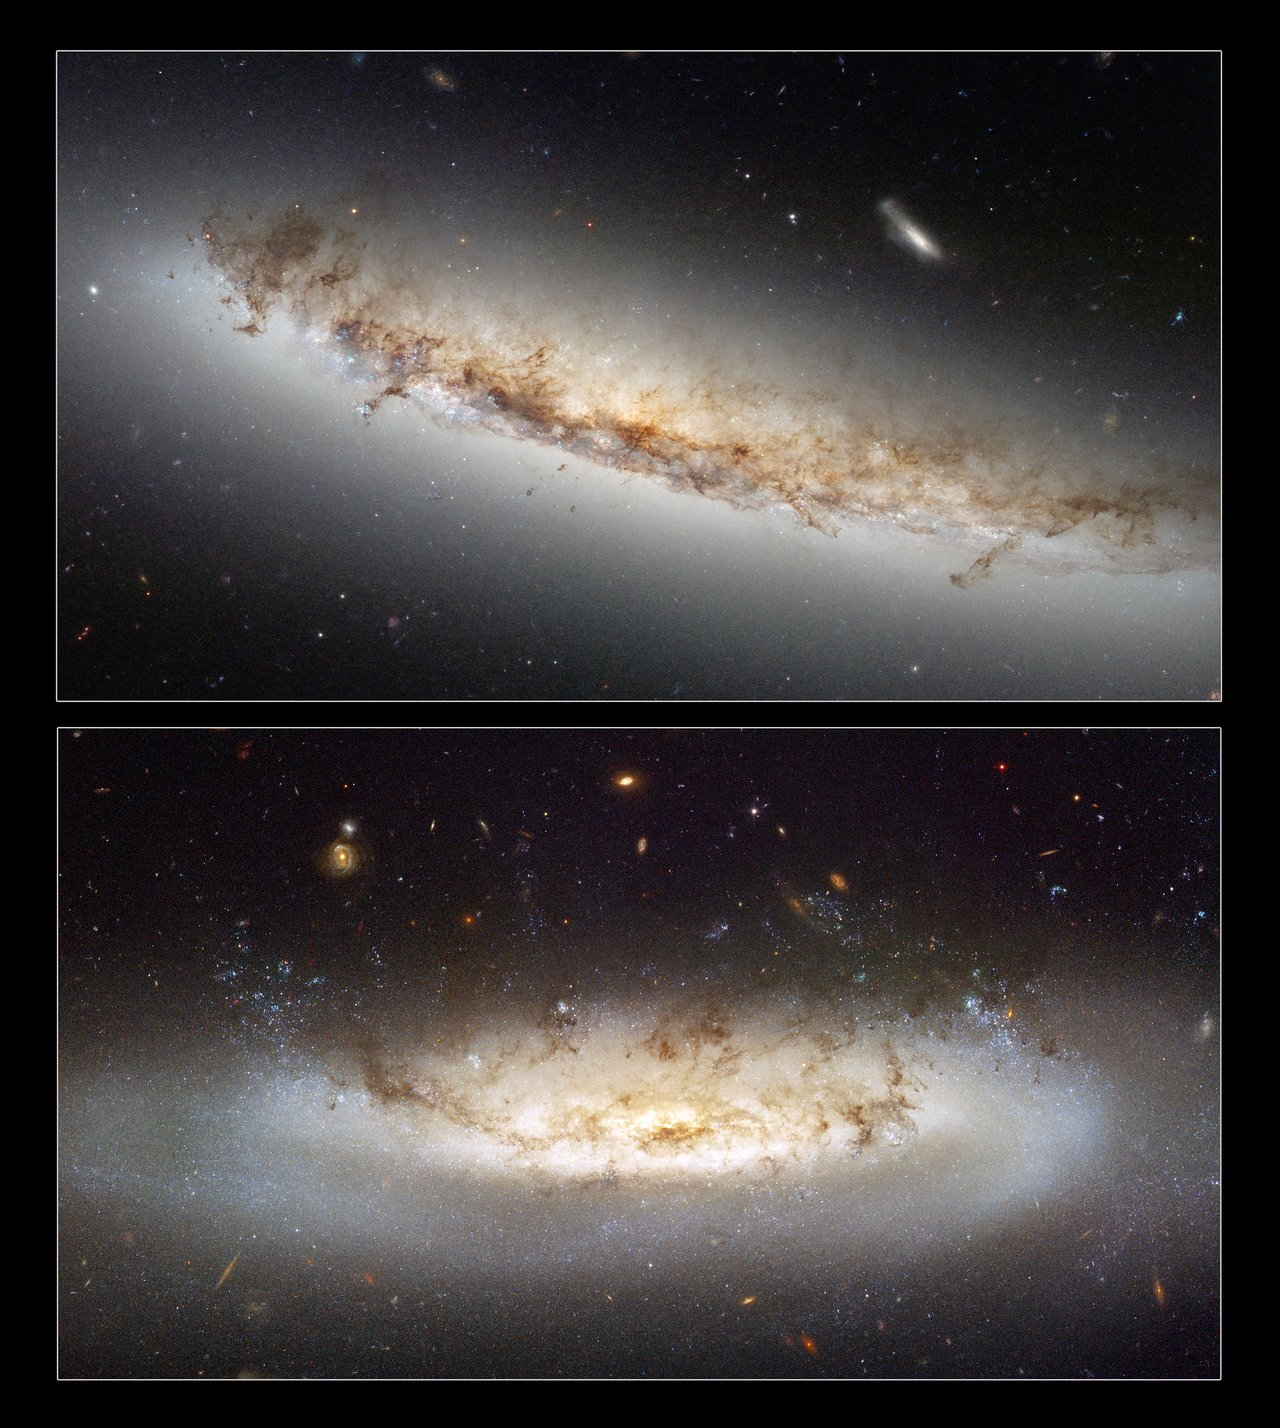 Ram pressure stripping galaxies NGC 4522 and NGC 4402